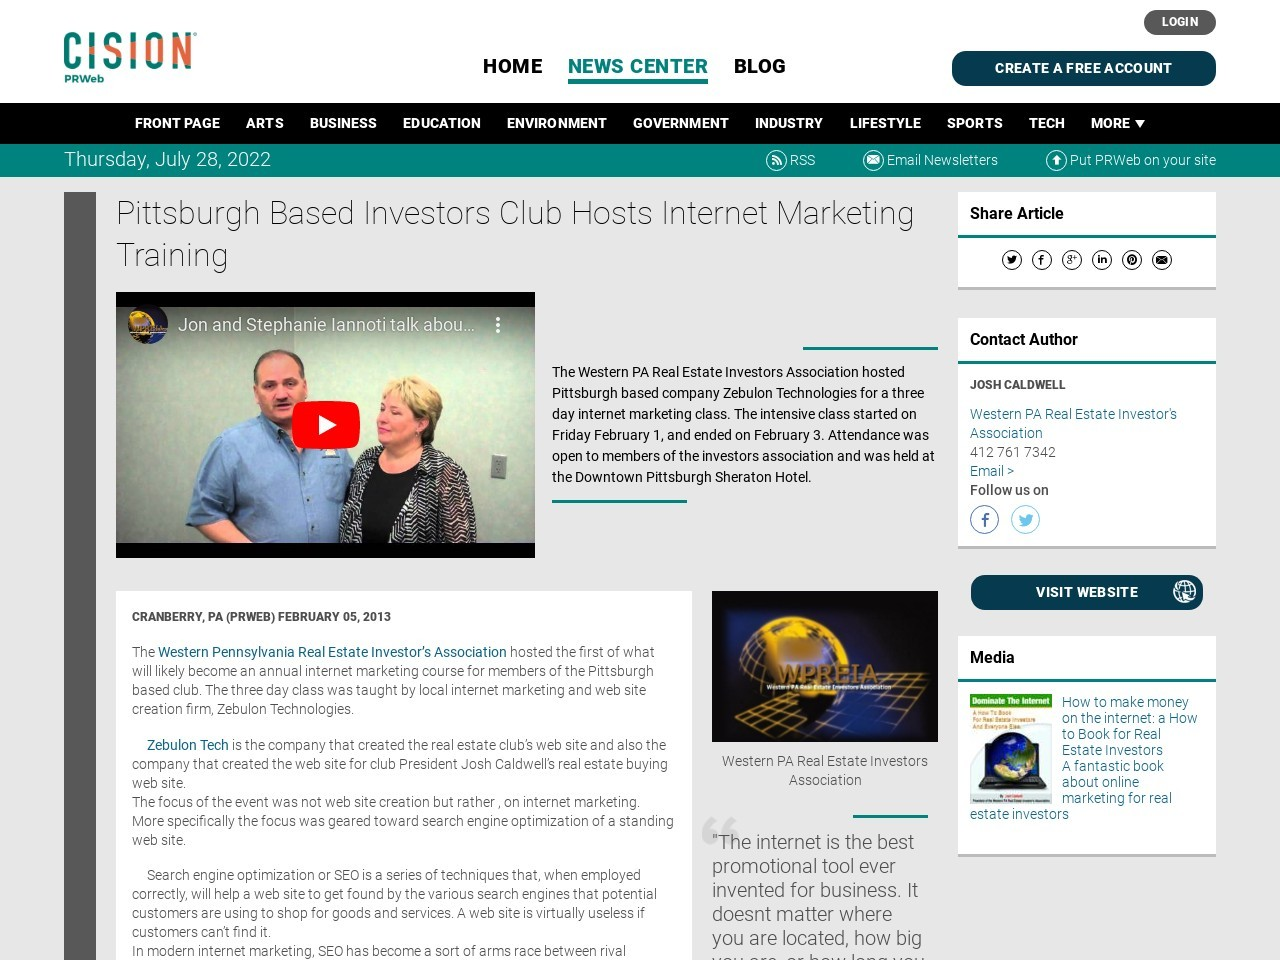 Pittsburgh Based Investors Club Hosts Internet Marketing Training